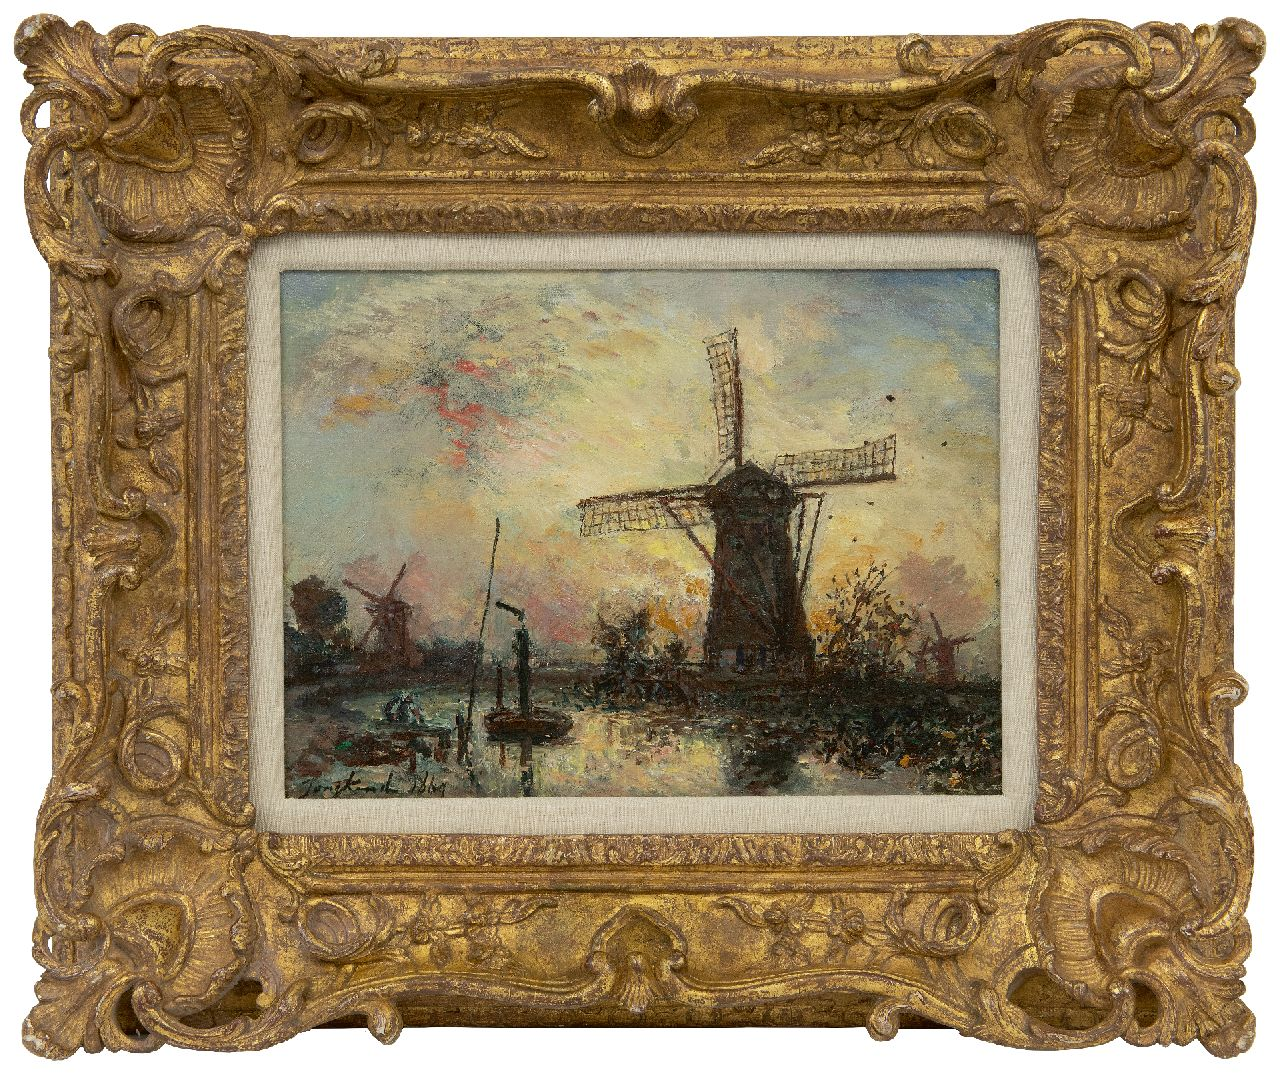 Jongkind J.B.  | Johan Barthold Jongkind | Paintings offered for sale | Moulins au bord d'un canal, Hollande, oil on canvas 24.6 x 33.0 cm, signed l.l. and dated 1869